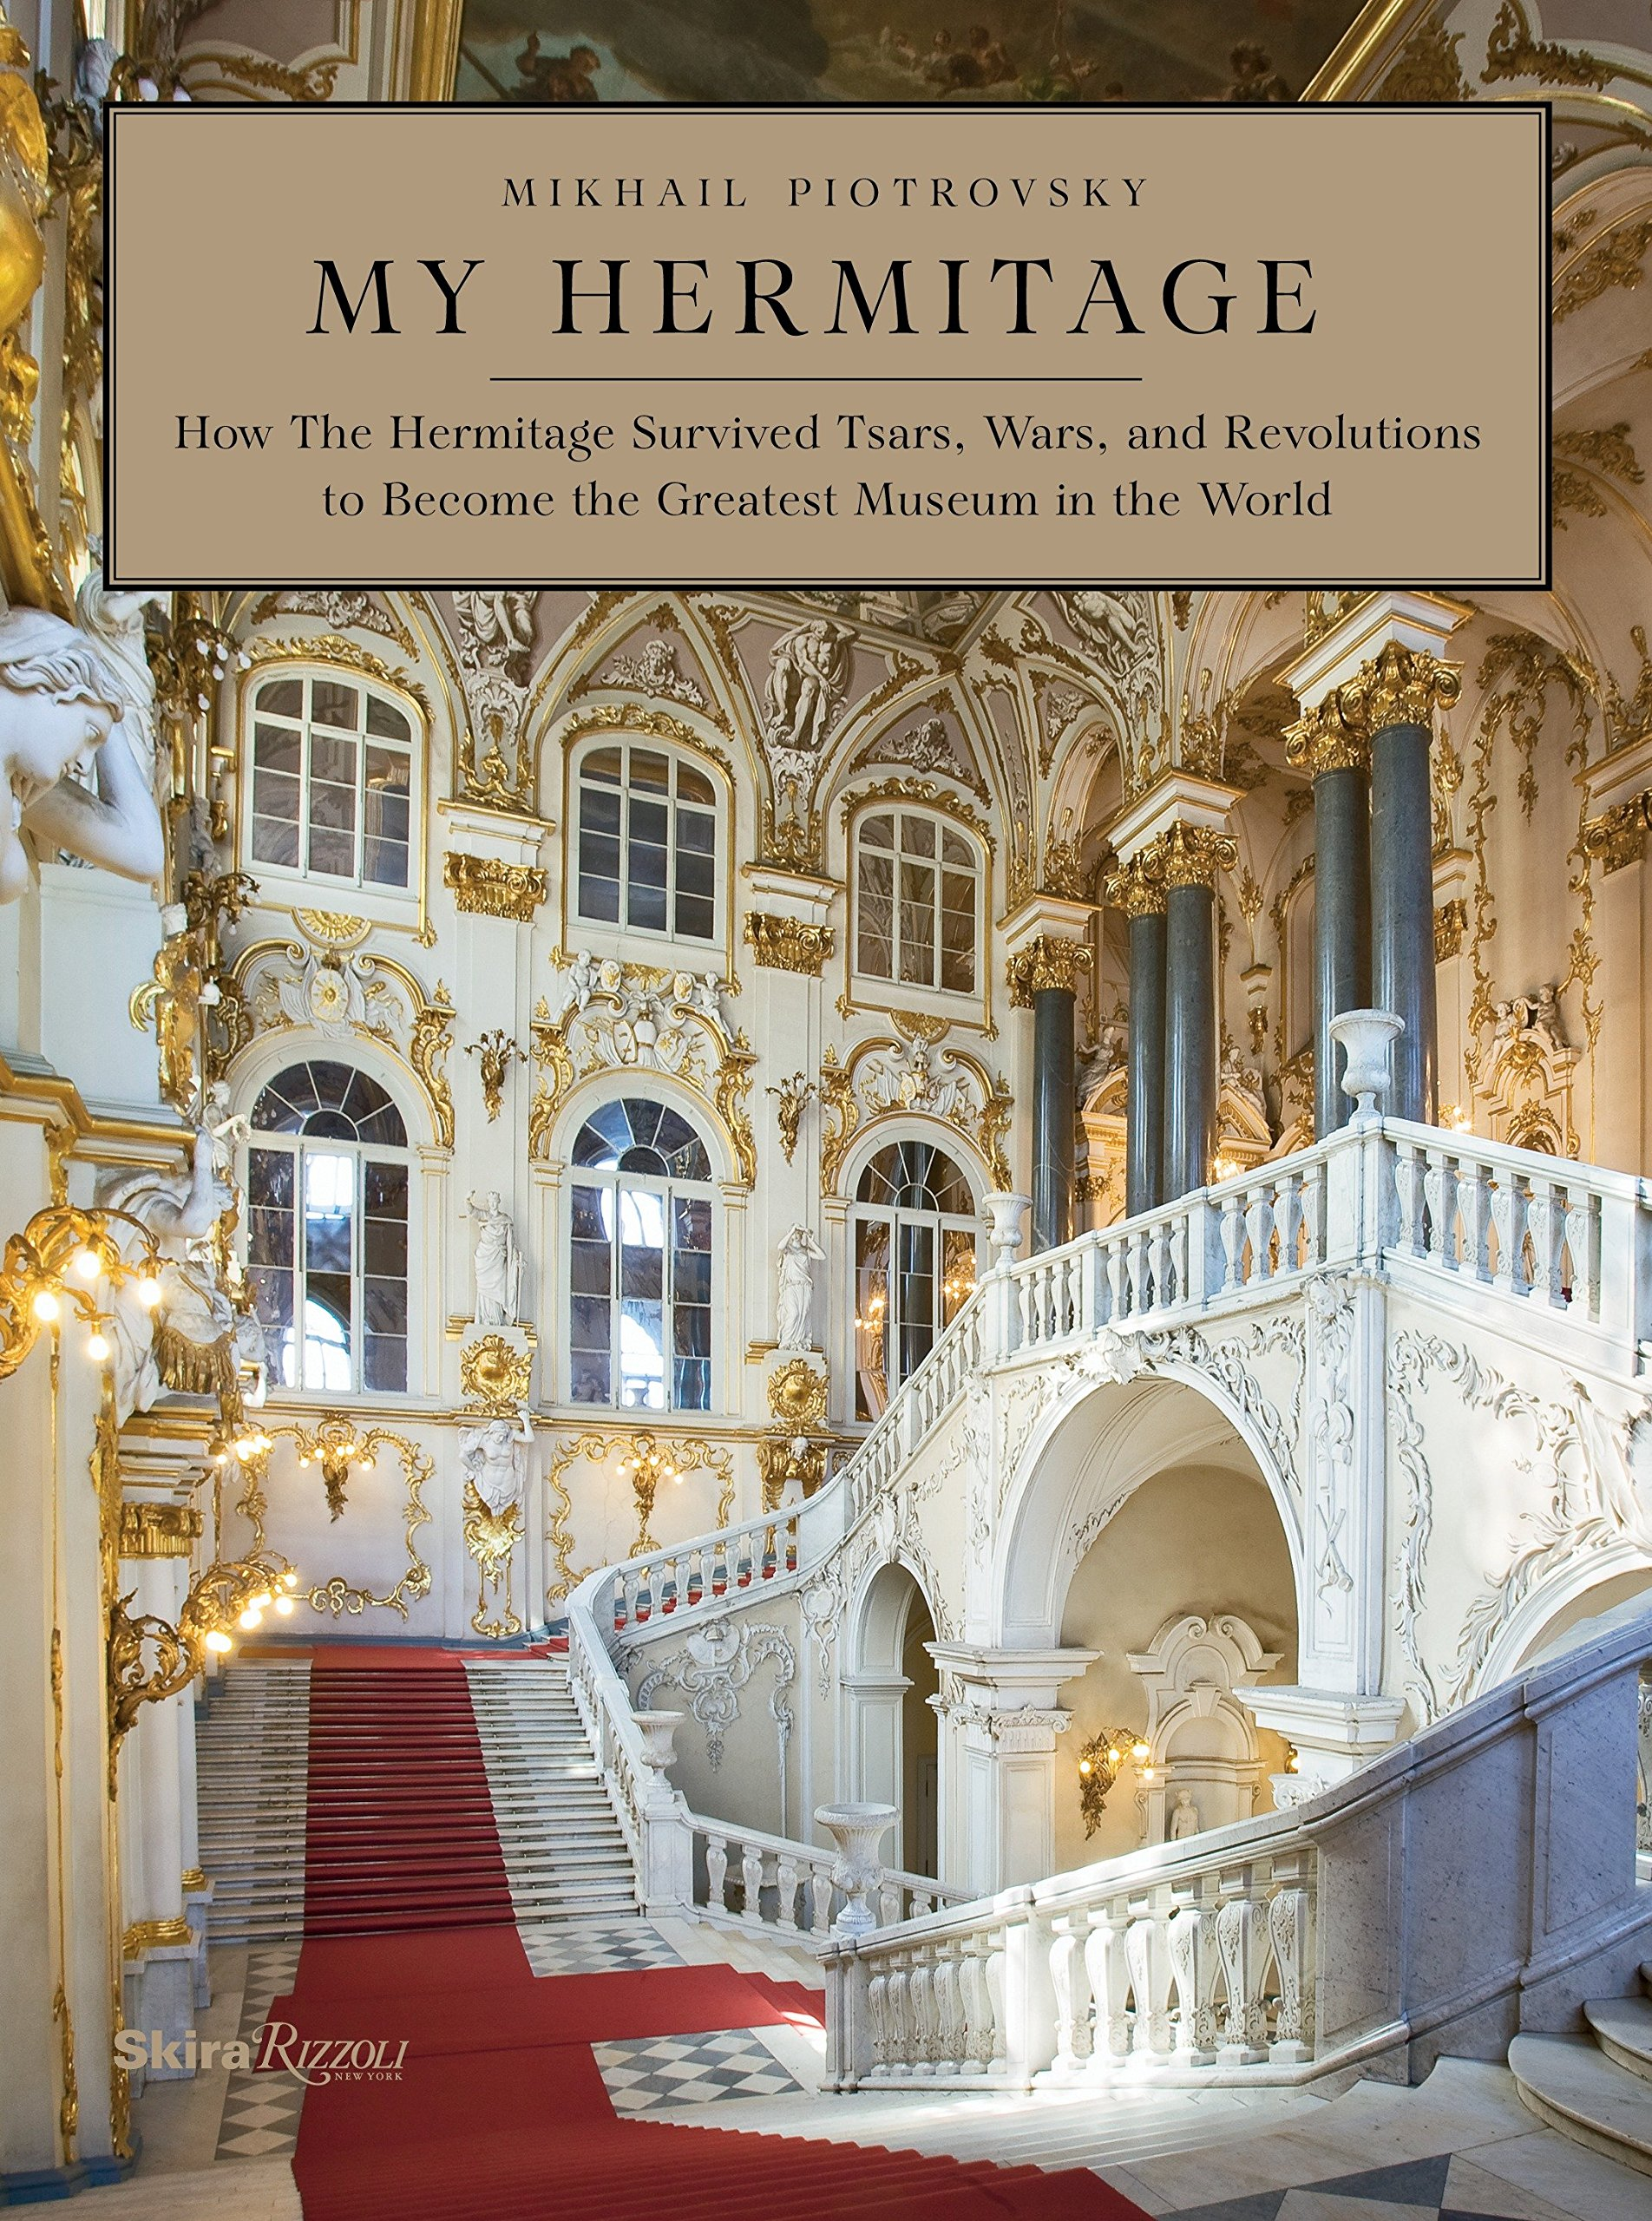 Download My Hermitage: How the Hermitage Survived Tsars, Wars, and Revolutions to Become the Greatest Museum in the World PDF